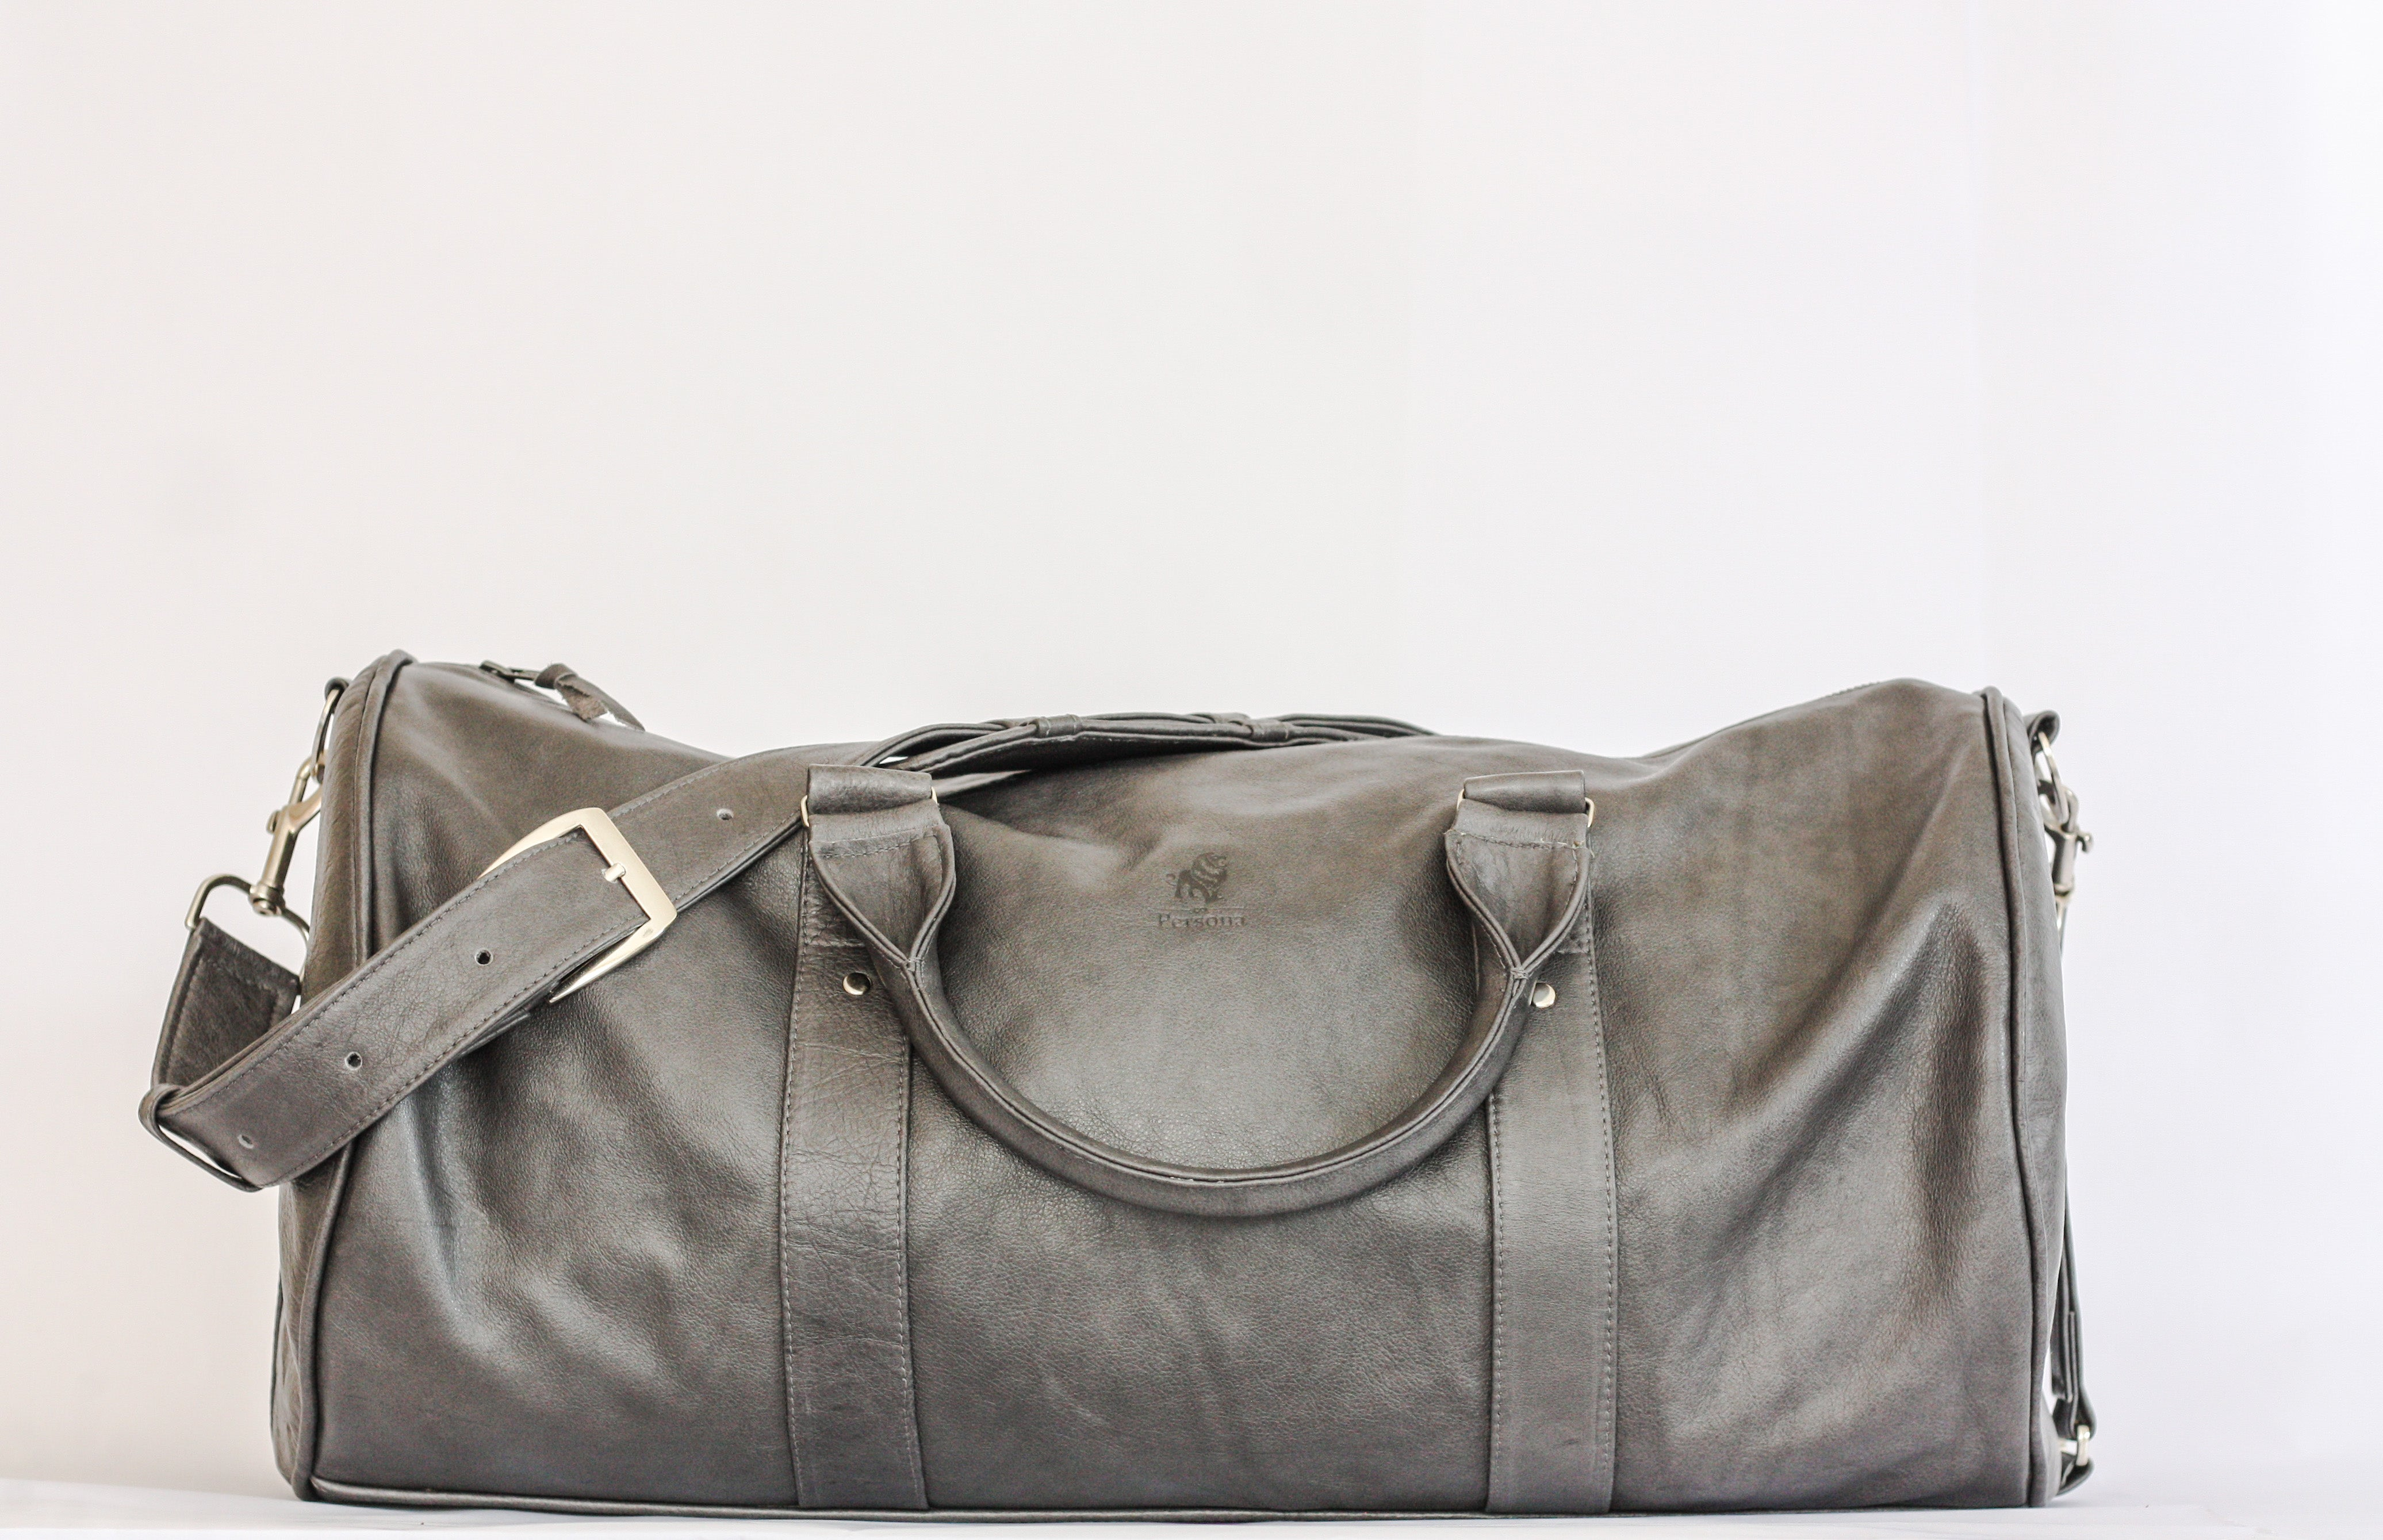 Duffel - Charcoal (front view)